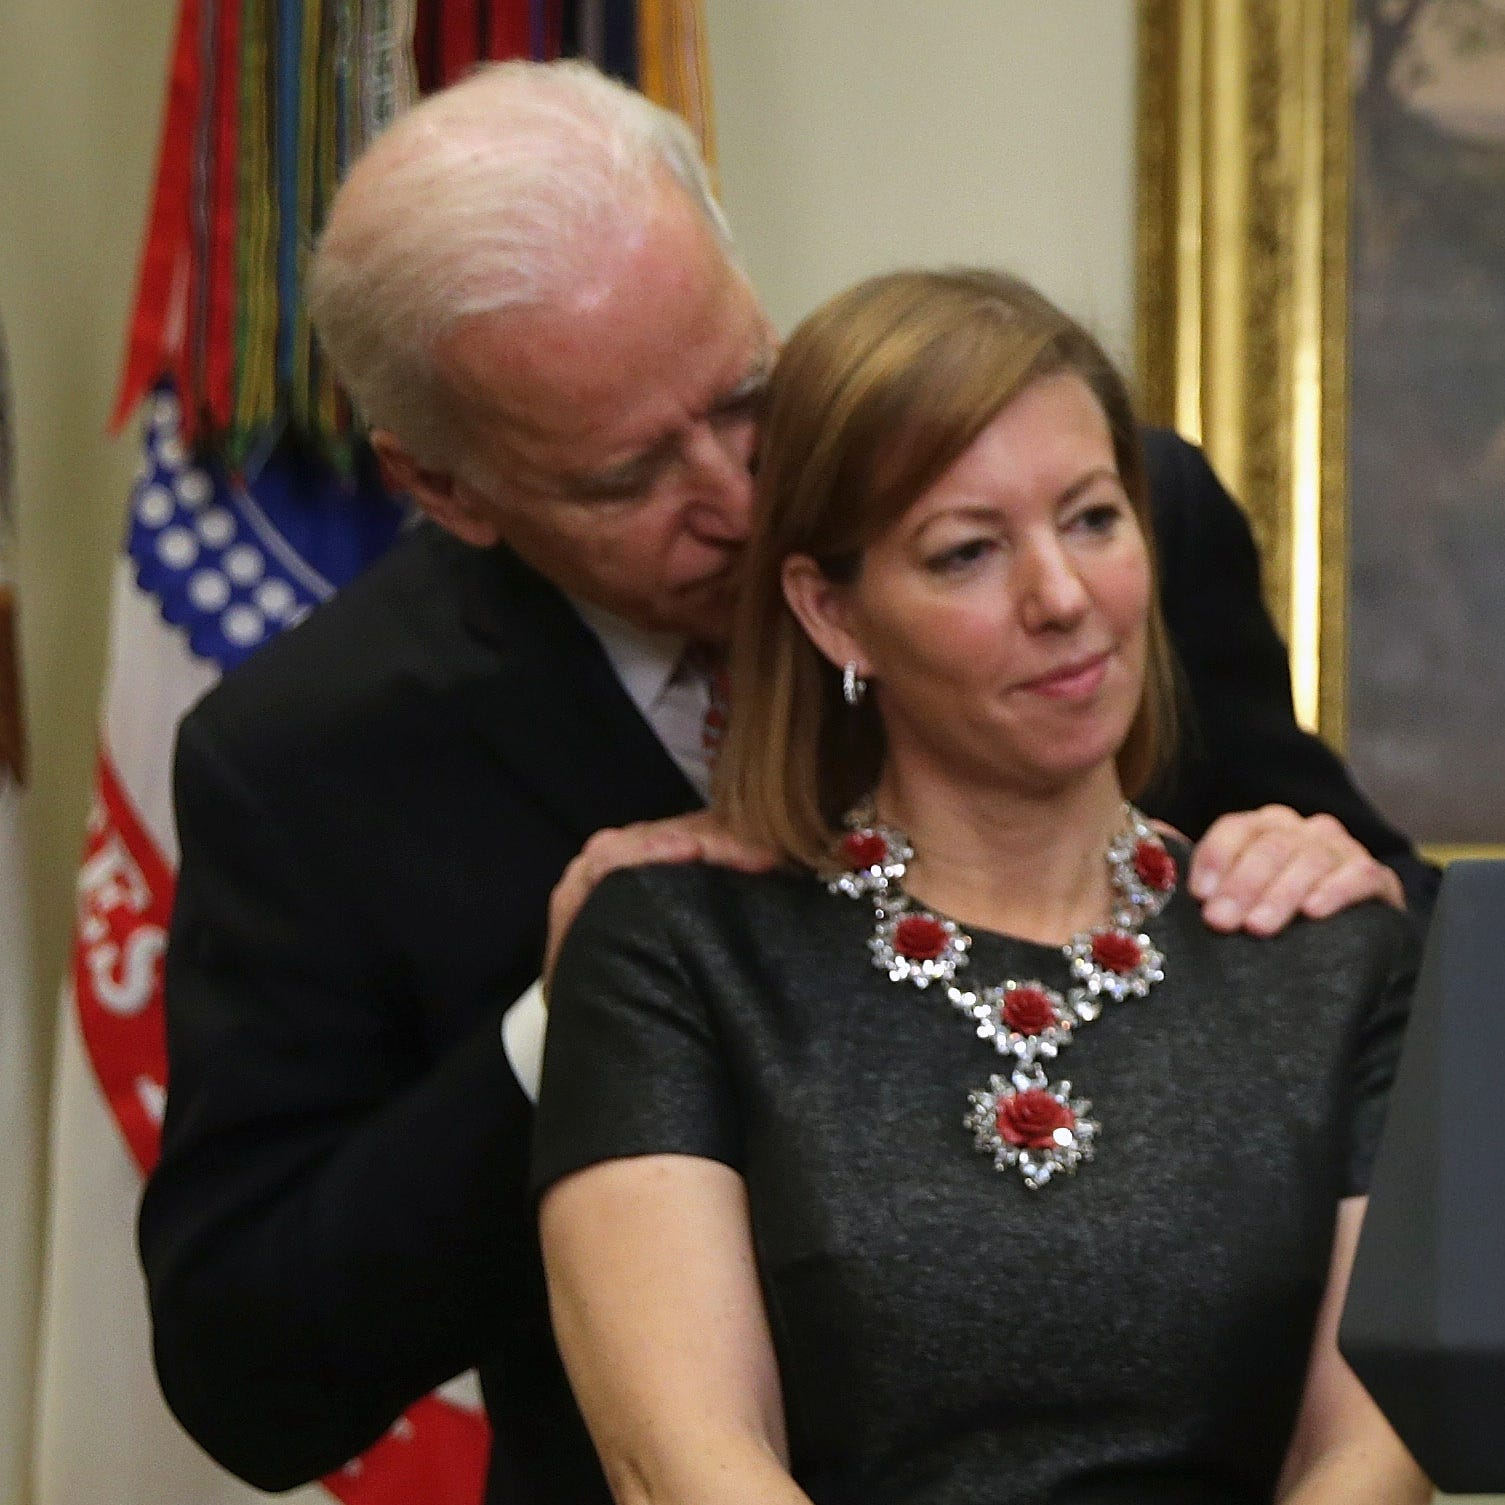 Can Biden escape 'creepy Uncle Joe'?